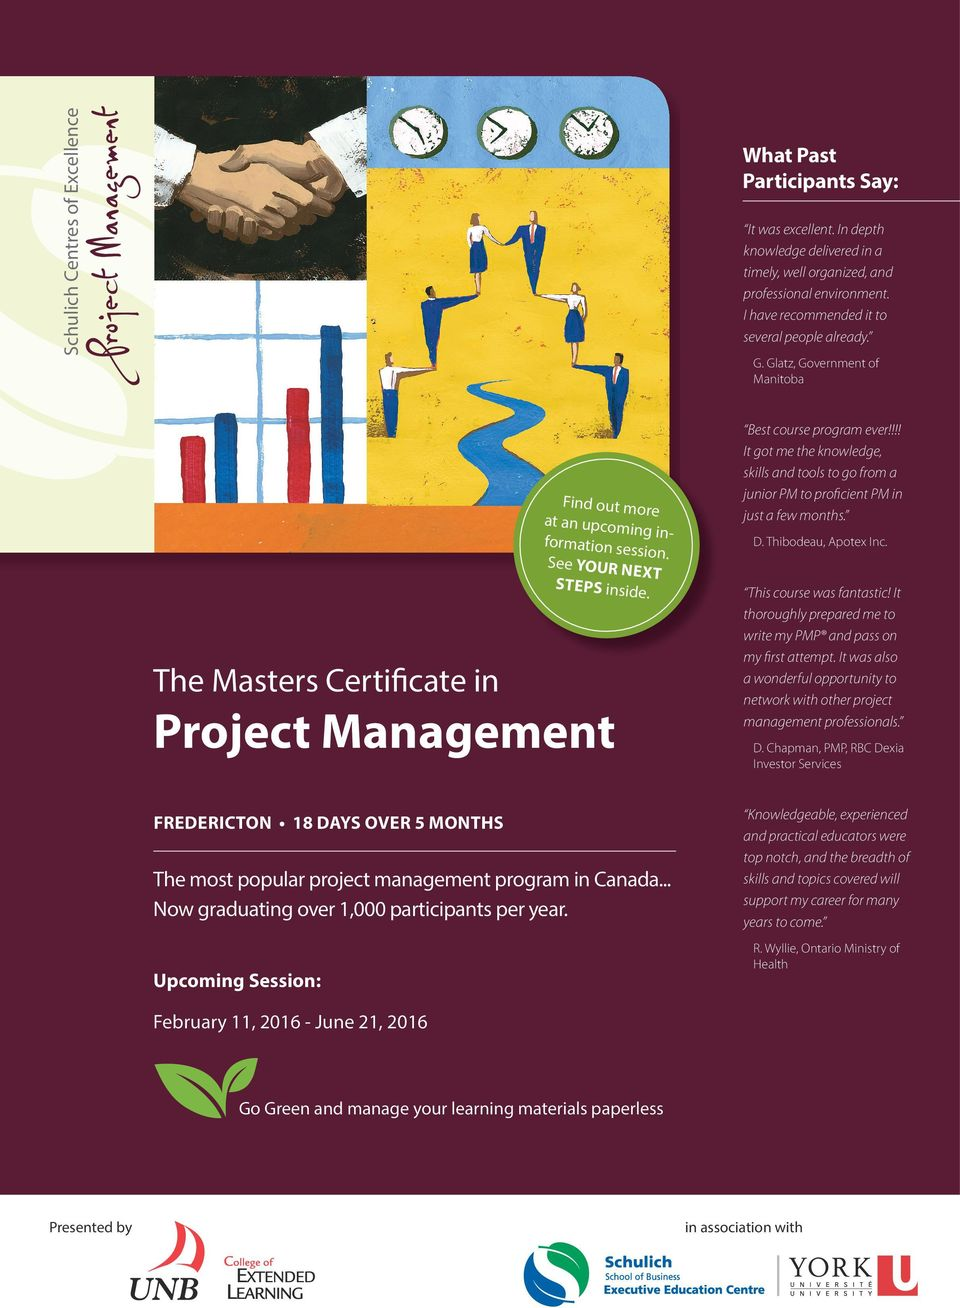 The Masters Certificate in Best course program ever!!!! It got me the knowledge, skills and tools to go from a junior PM to proficient PM in just a few months. D. Thibodeau, Apotex Inc.